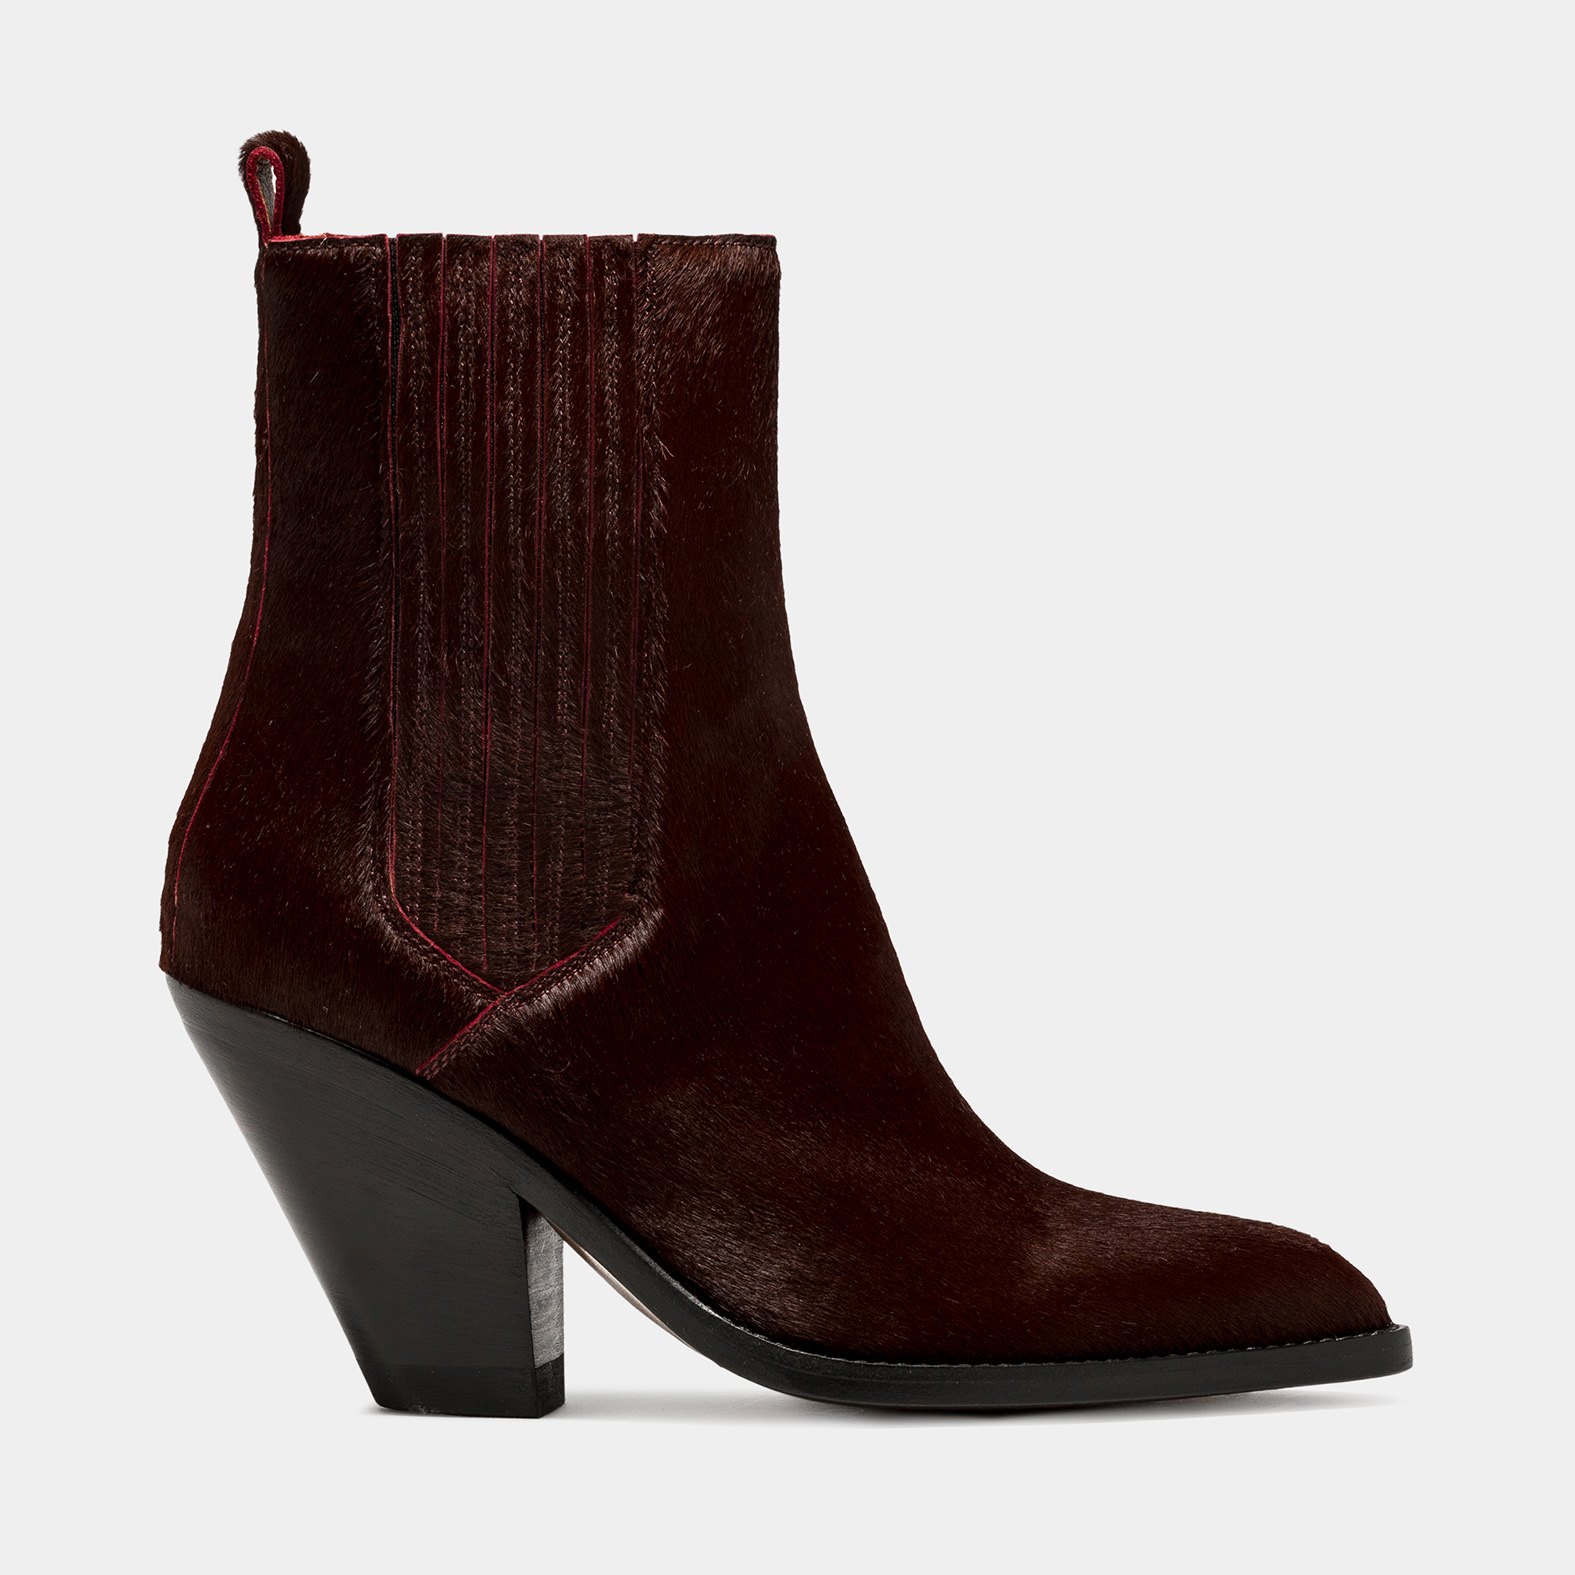 BUTTERO: JANE BOOTS IN BURGUNDY PONY SKIN